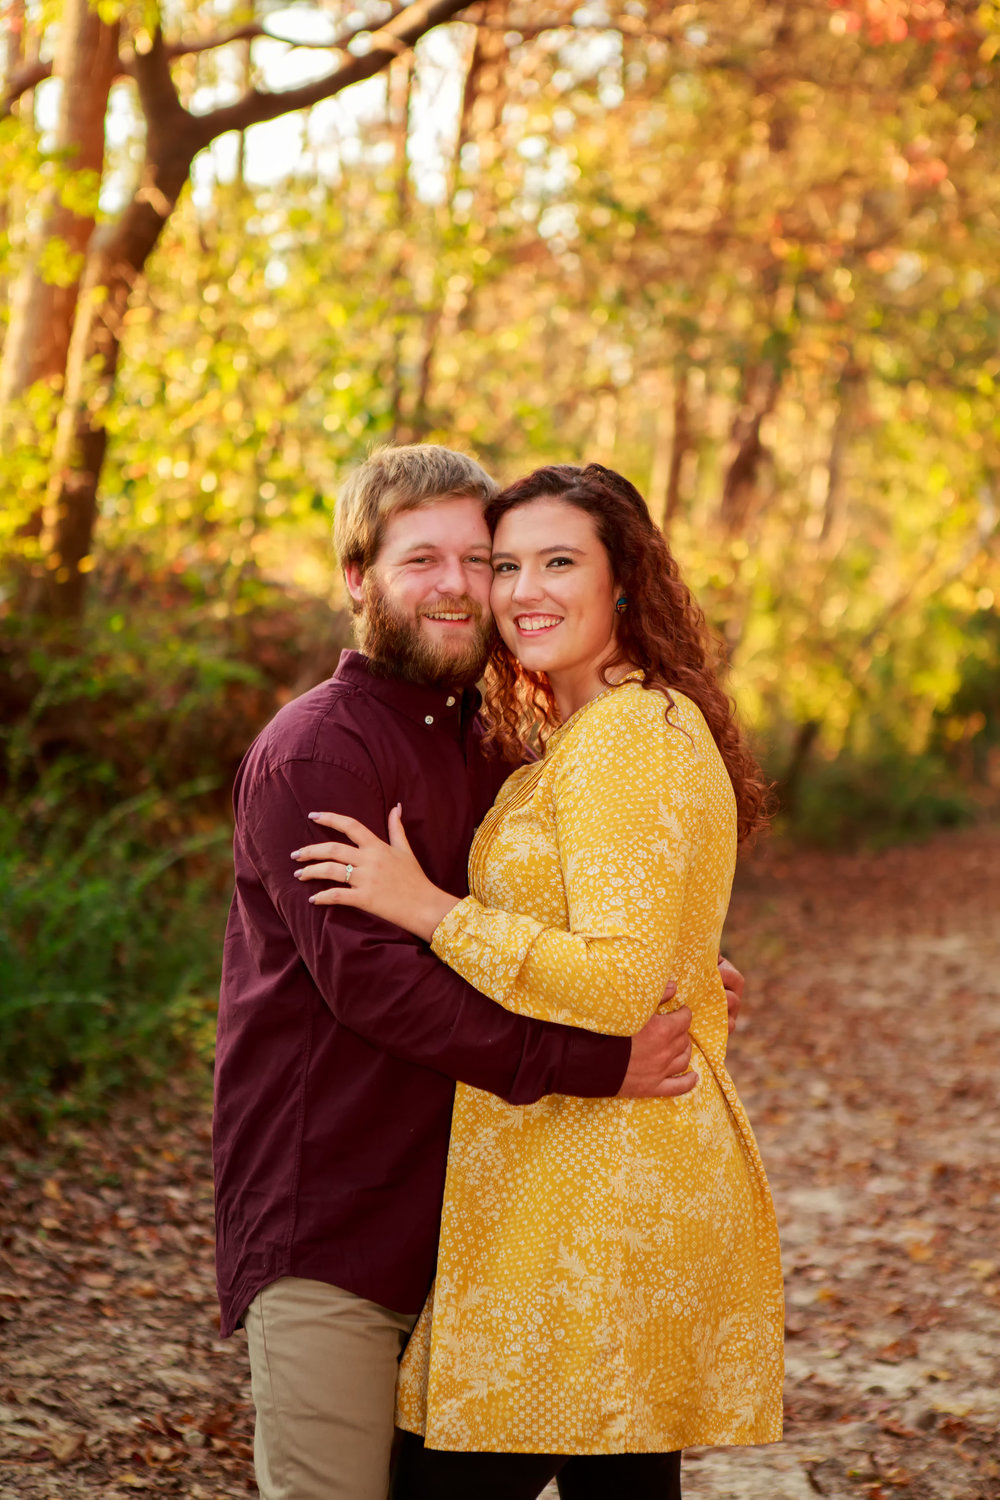 Wilmington_NC_Engagement_Photos_Tiffany_Abruzzo_Photography_33.jpg